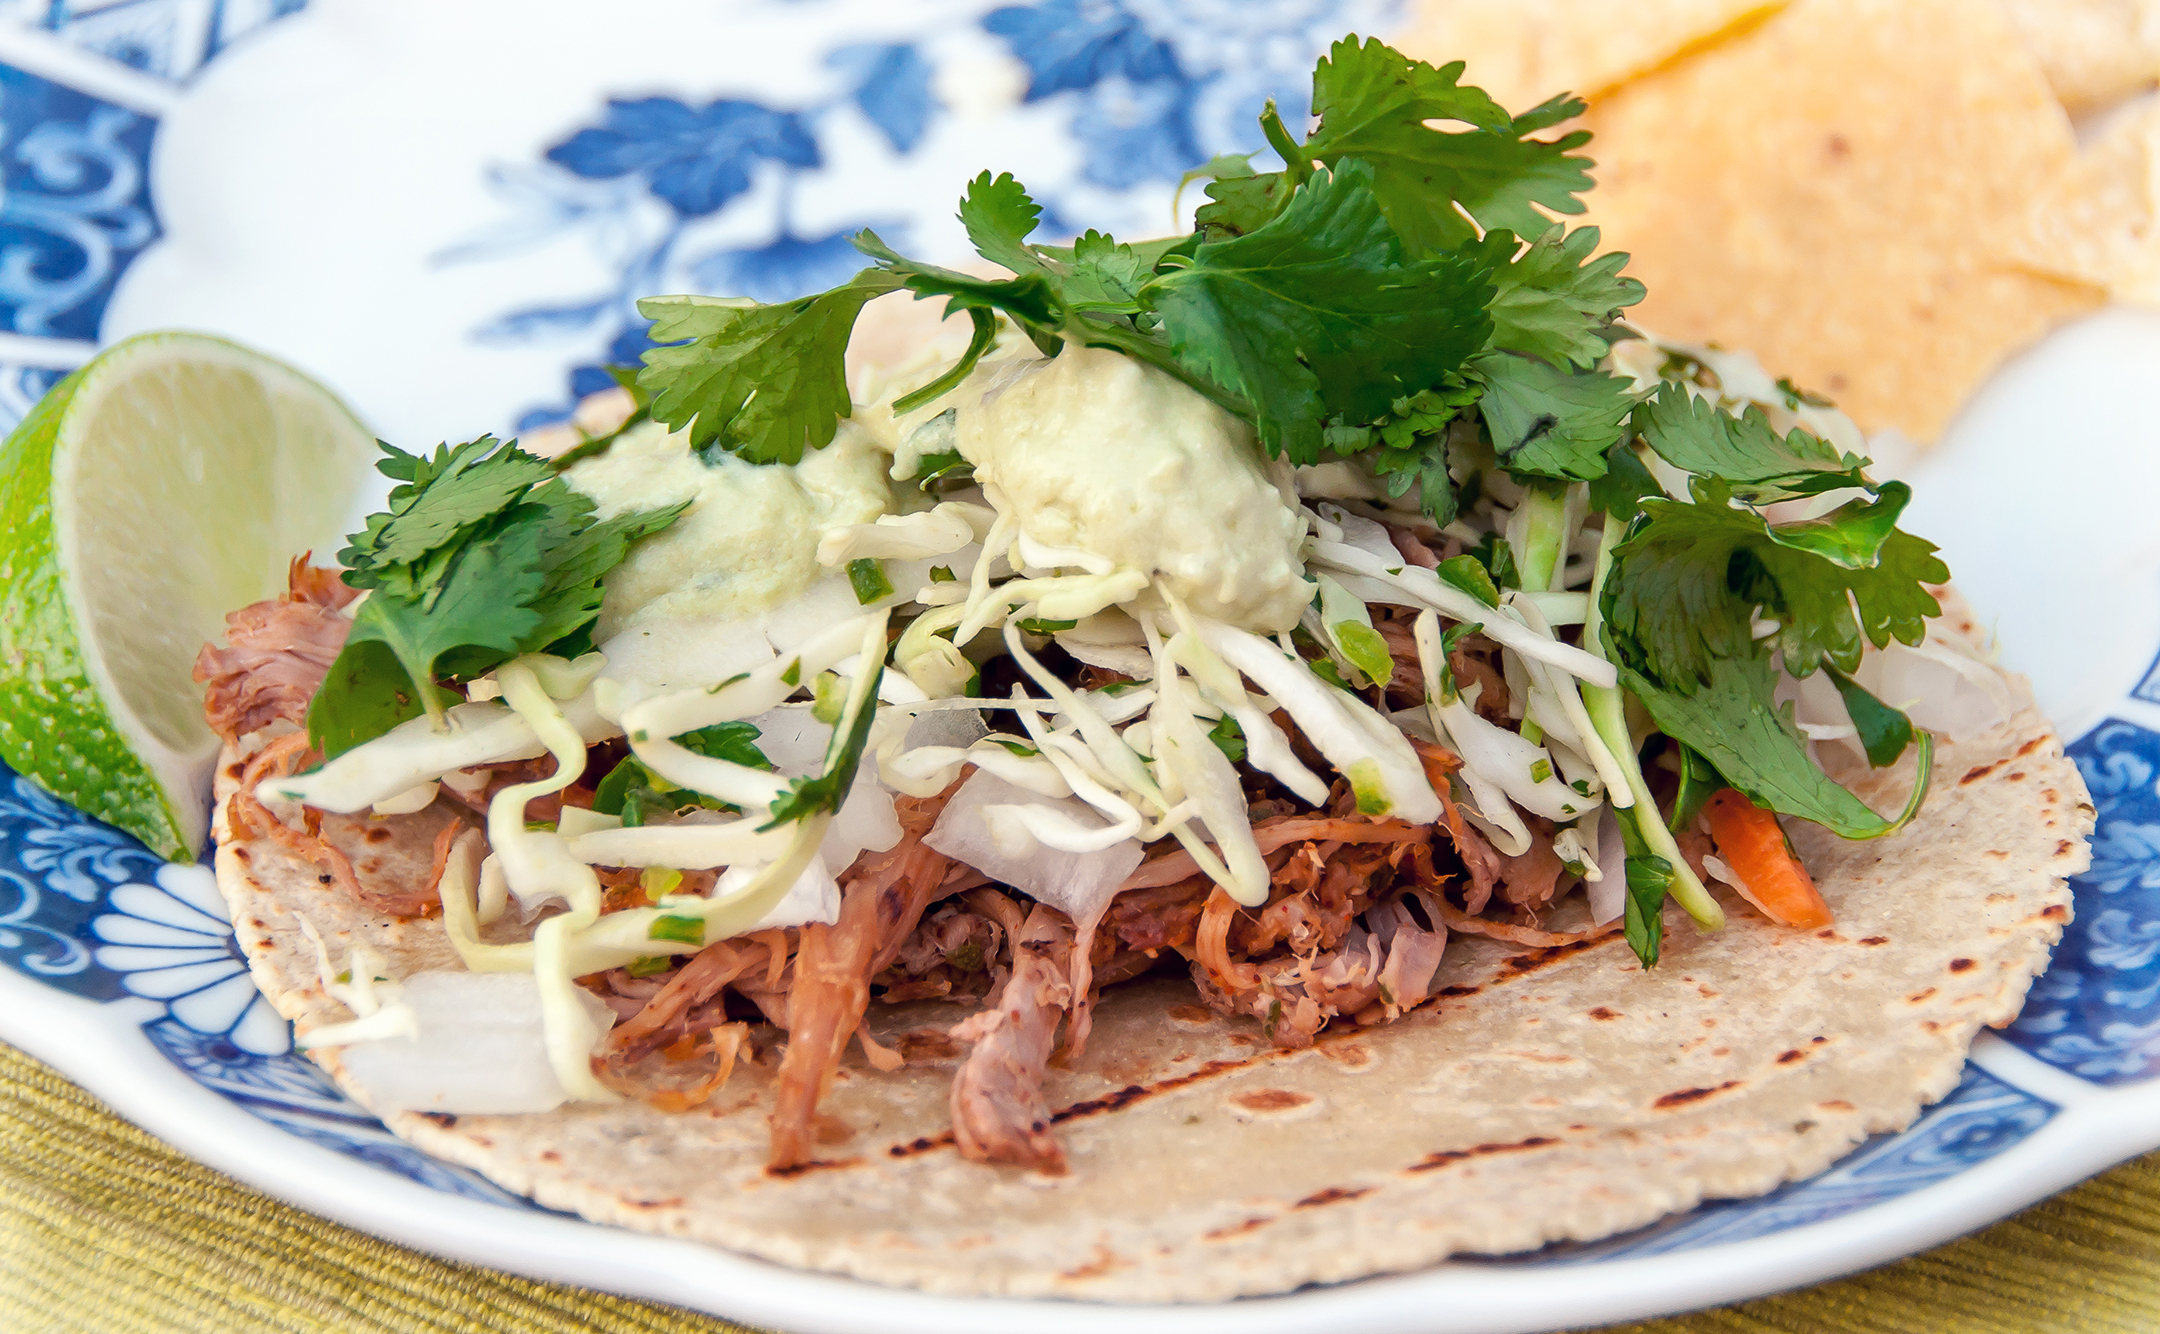 carnitas tacos white duck taco shop at white duck taco shop tacos ...